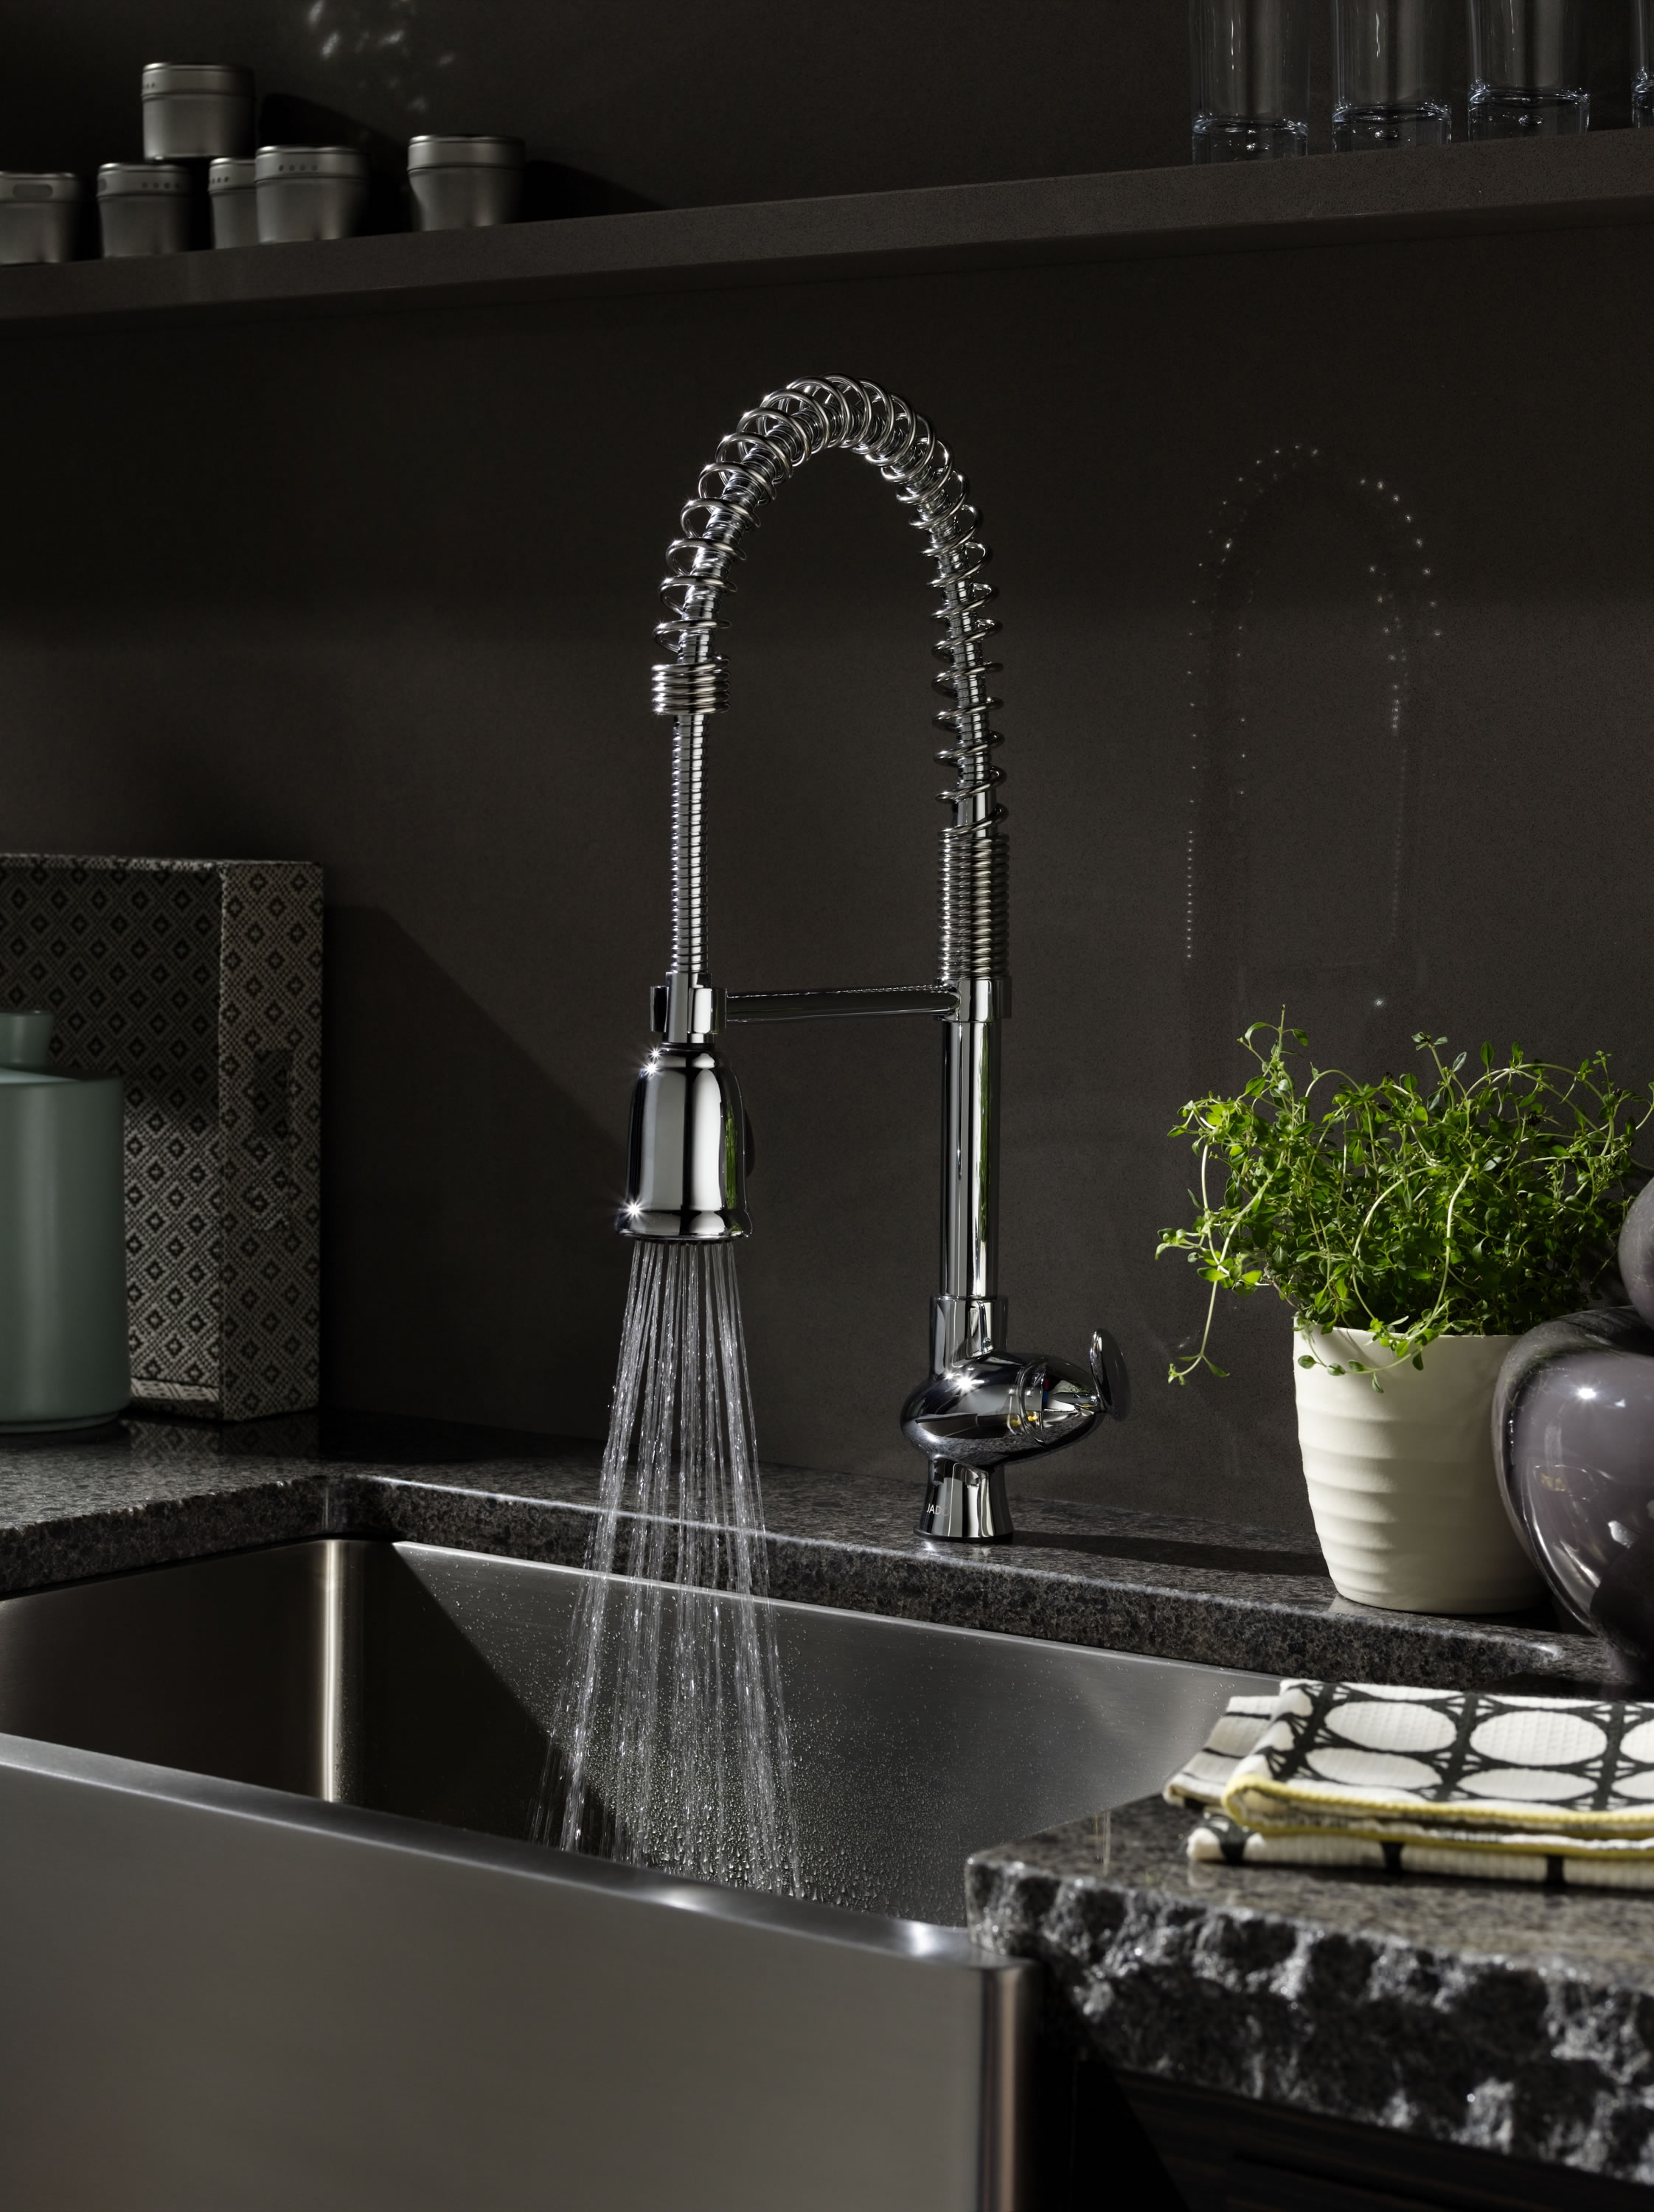 Ideas, best industrial style kitchen faucet best industrial style kitchen faucet commercial style industrial kitchen faucet design ideas decors 2243 x 3000  .